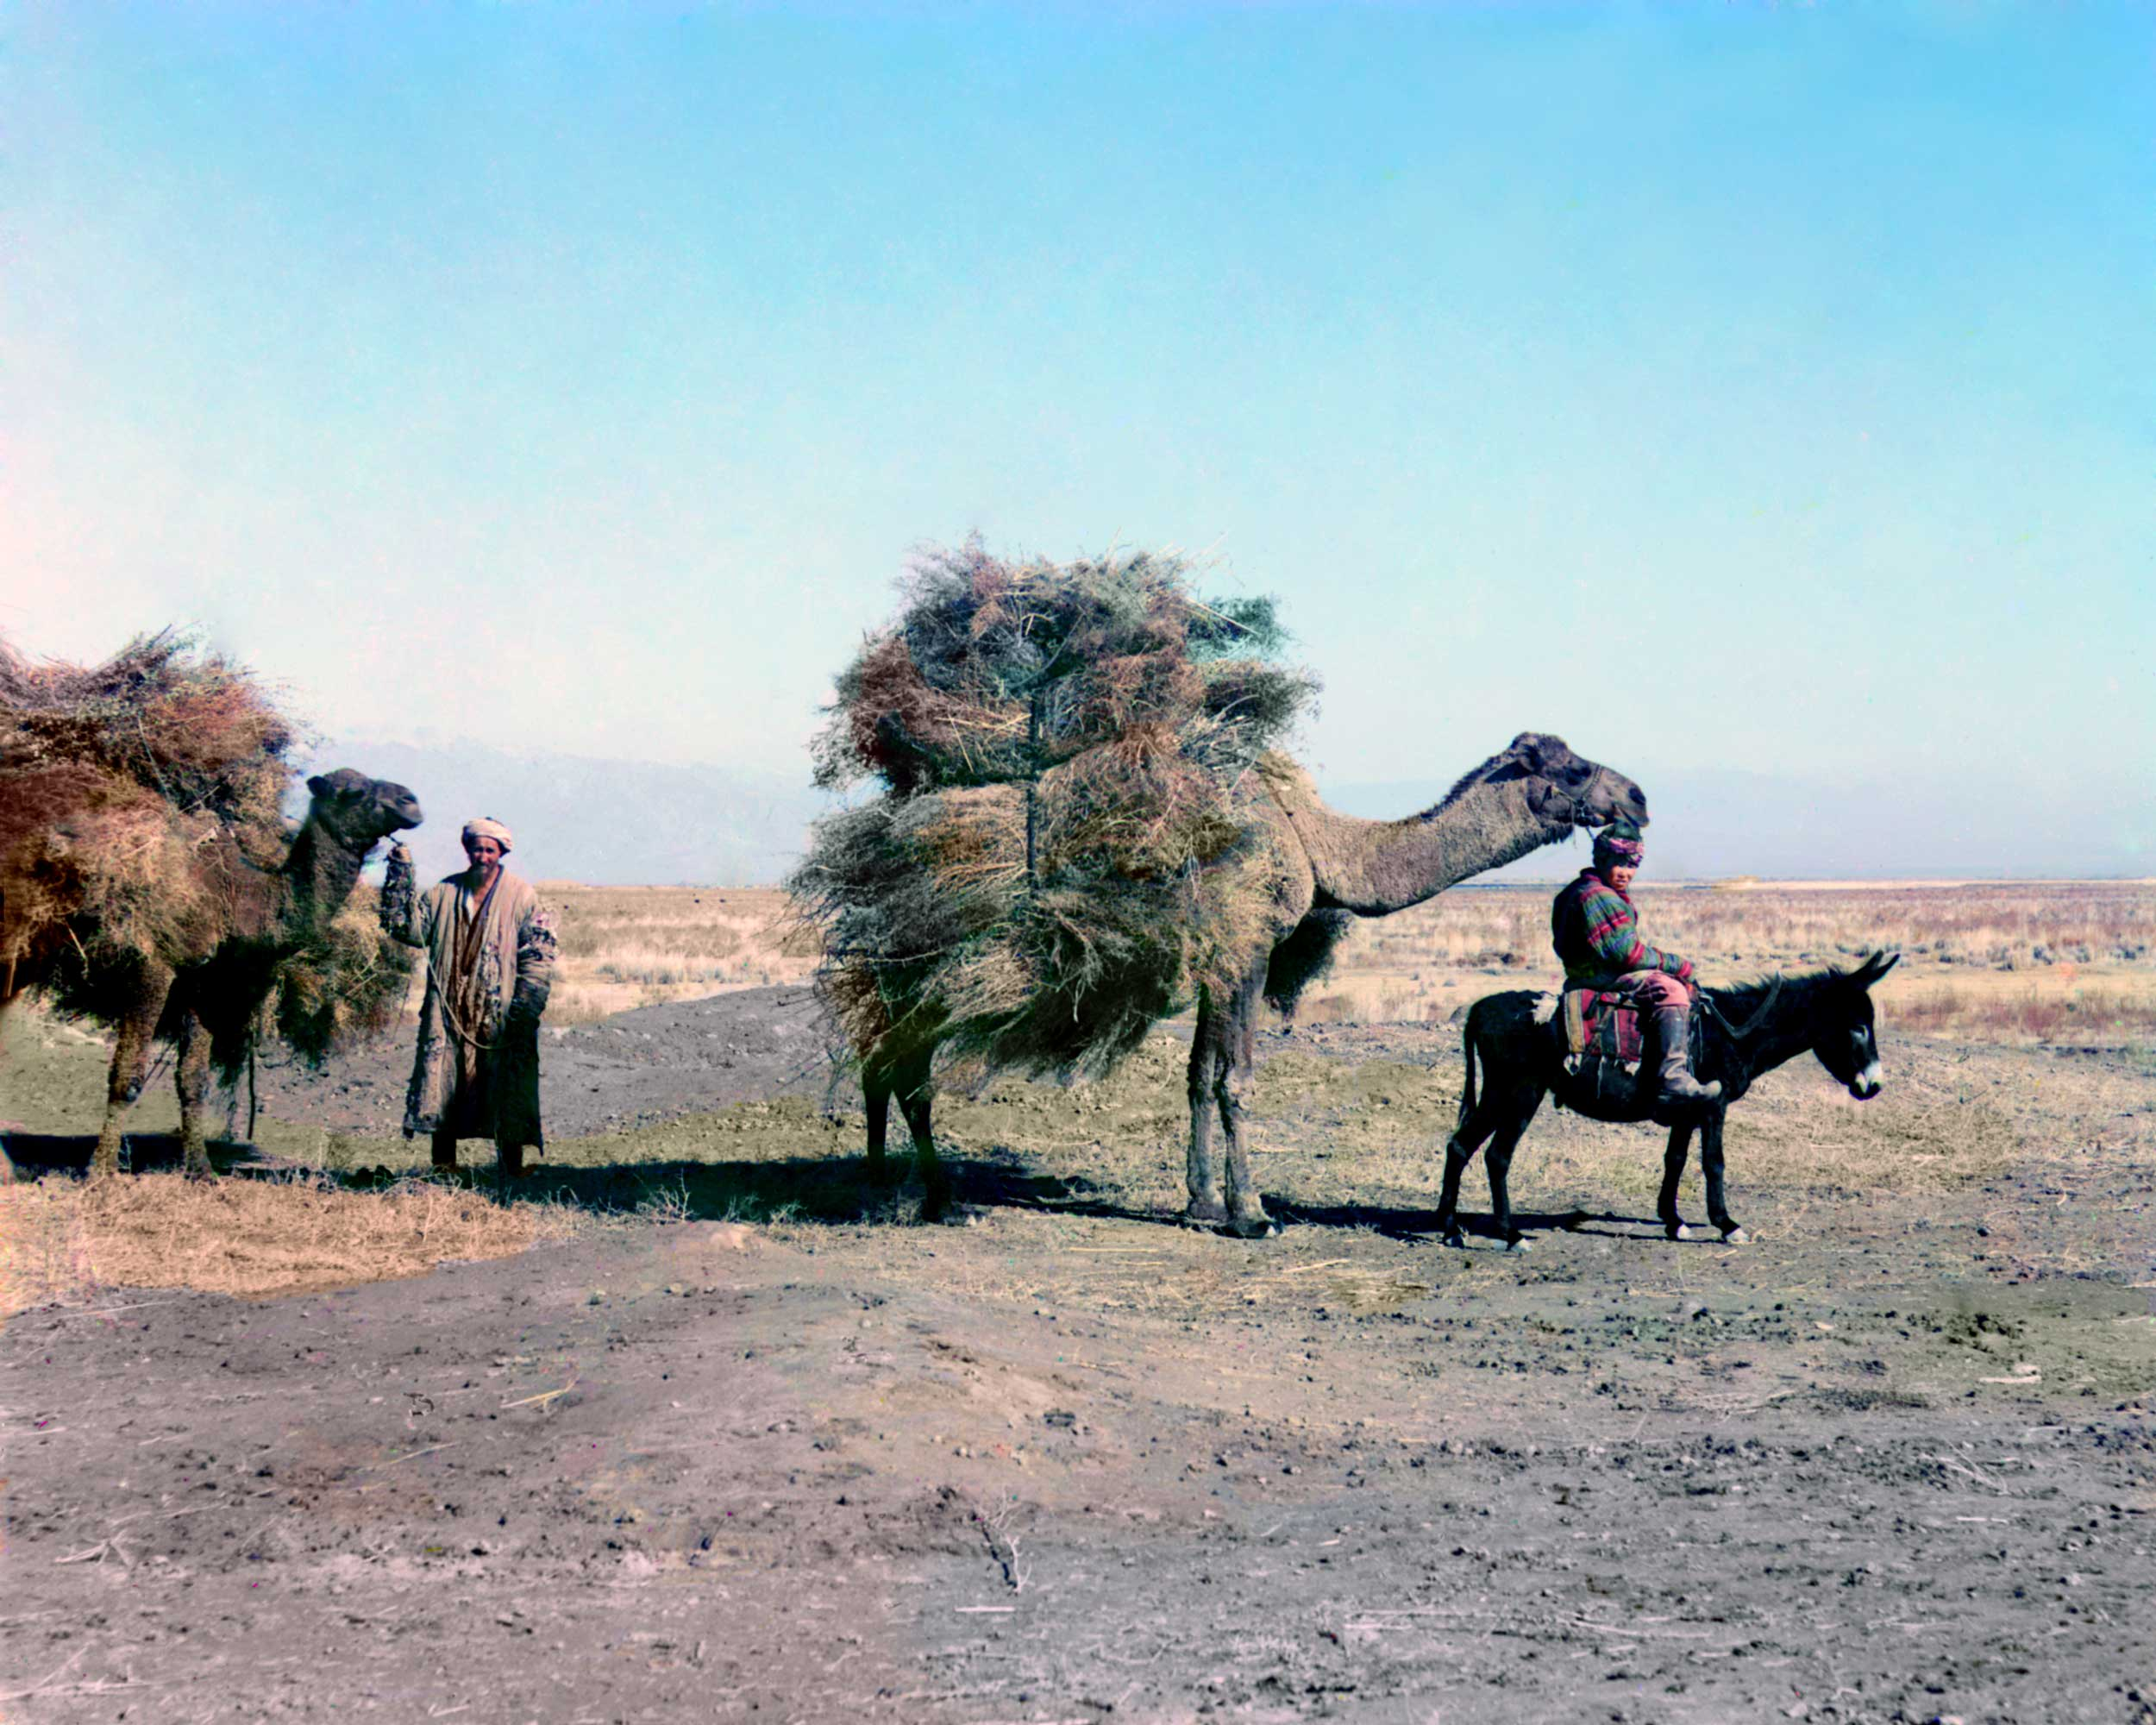 A camel caravan carrying thorns for fodder, Golodnaia Steppe